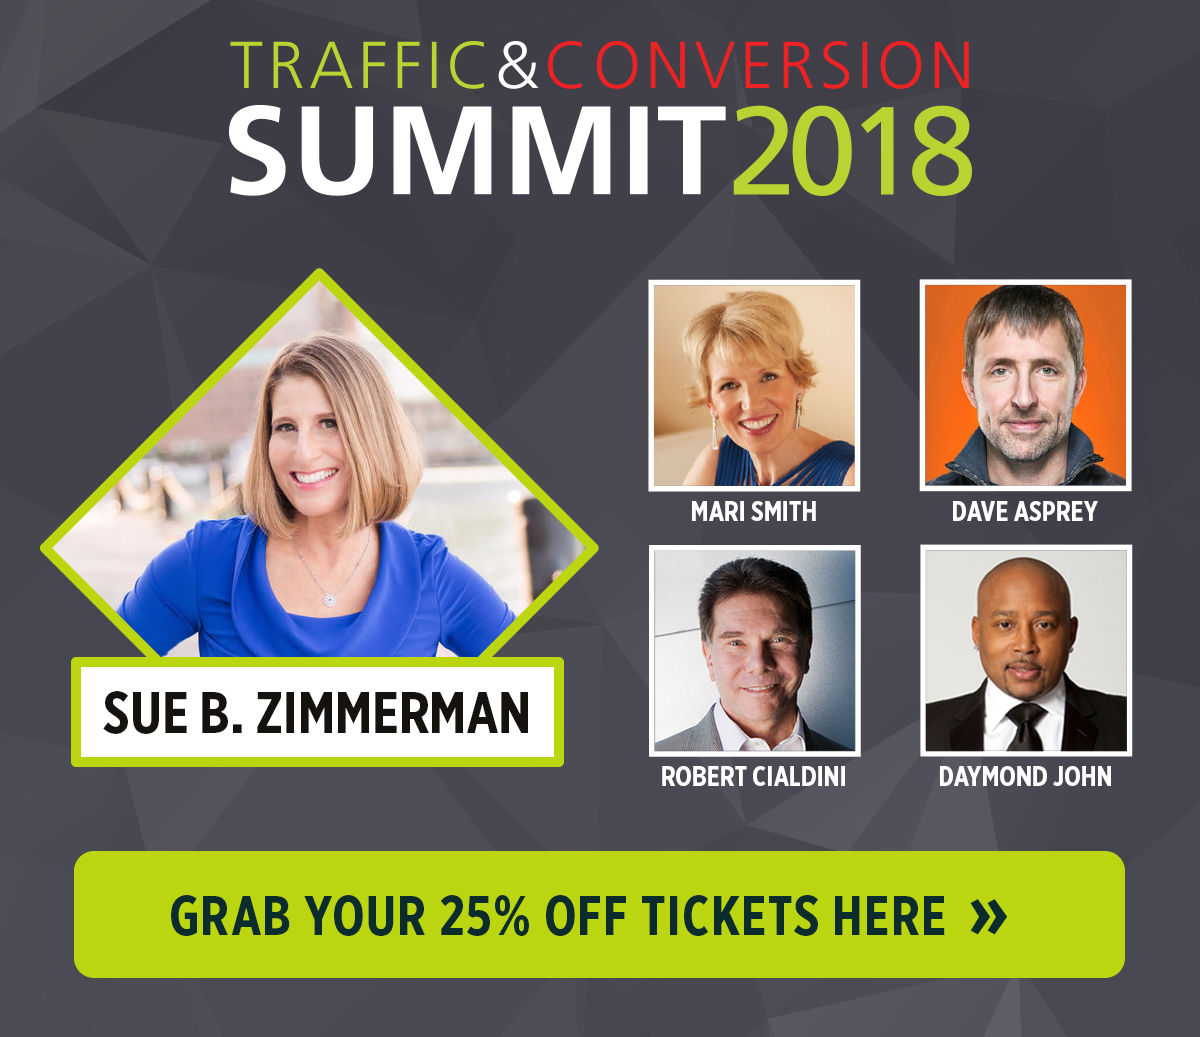 See Sue B. Zimmerman speak at Traffic & Conversion Summit 2018 and save 25% off your ticket!